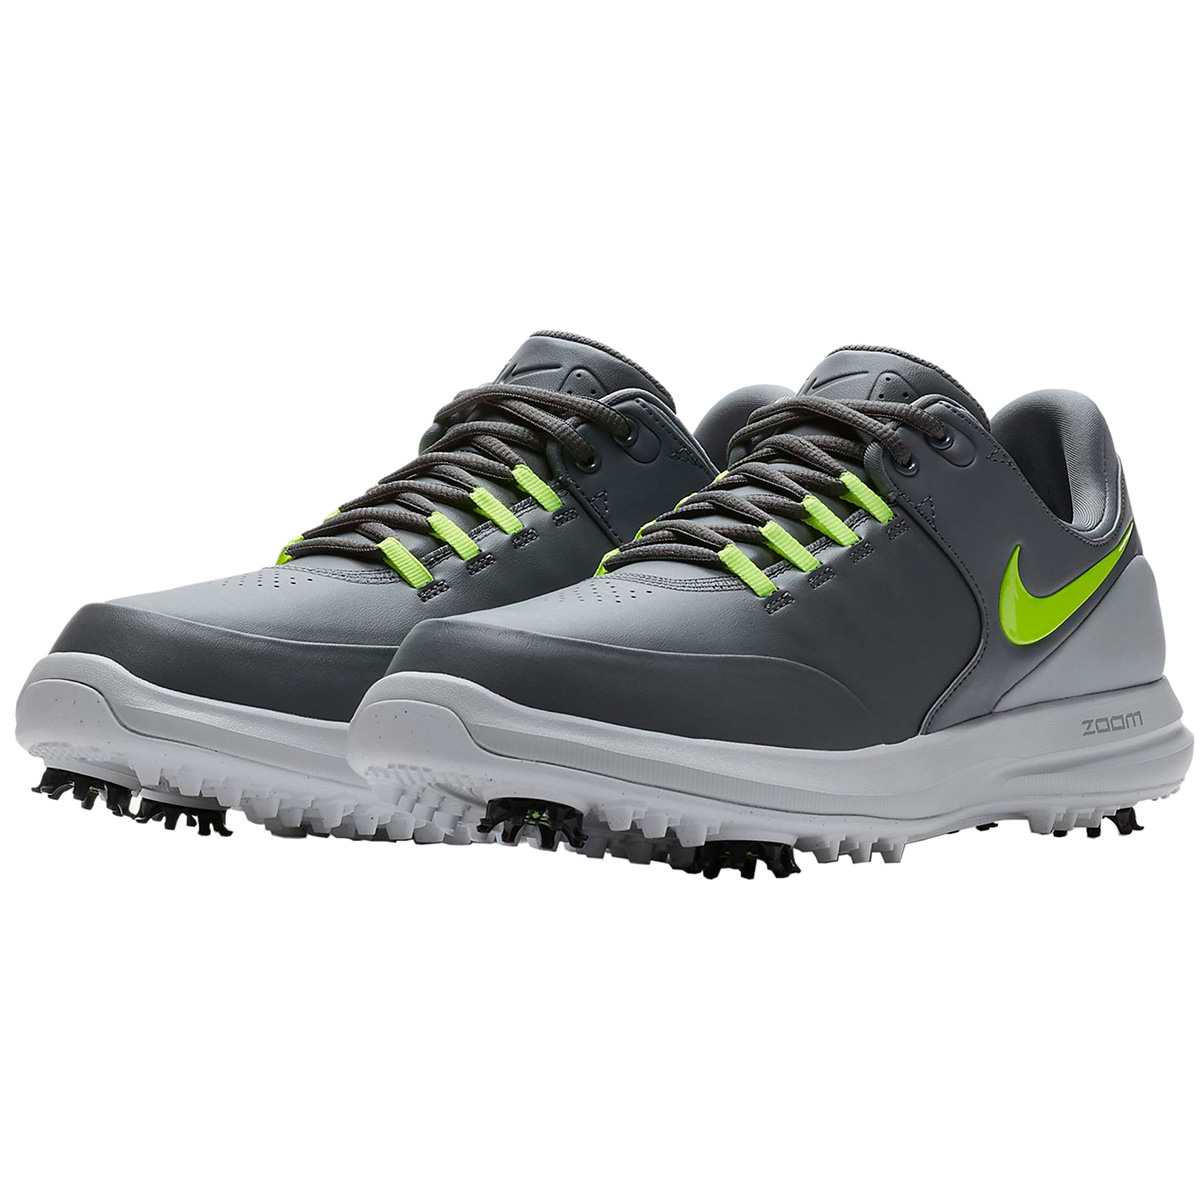 Nike Golf Air Zoom Accurate Shoes from american golf a7d6522c8